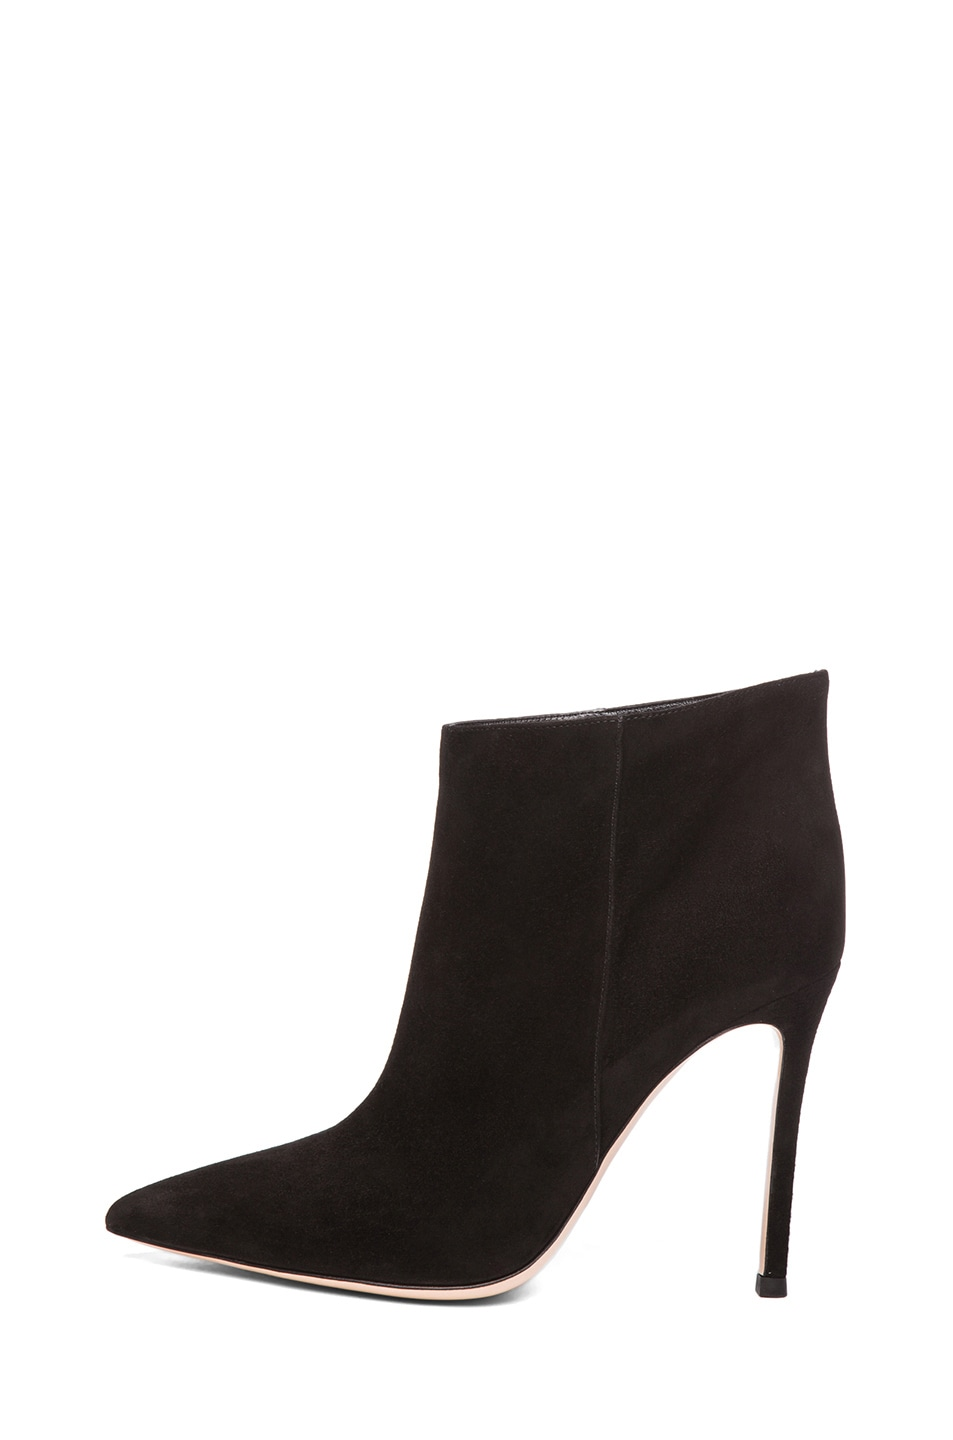 Image 1 of Gianvito Rossi Suede Ankle Bootie in Black